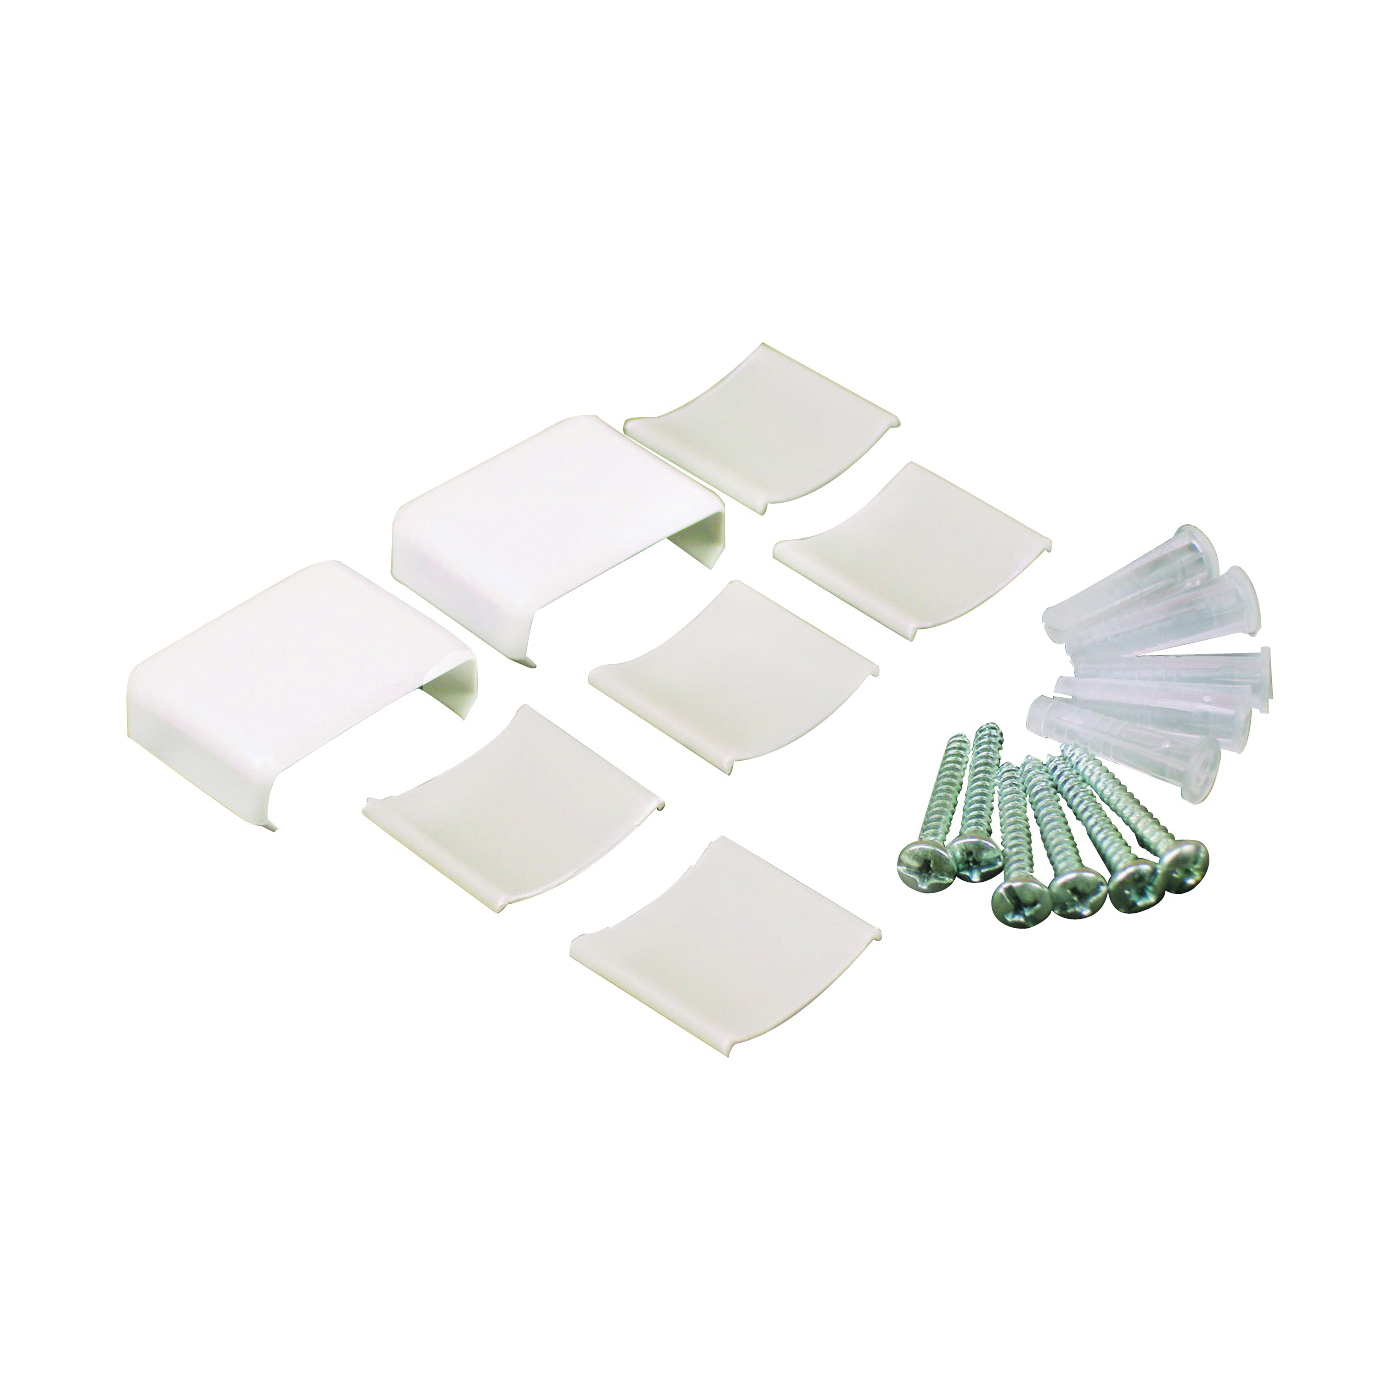 Picture of Legrand Wiremold NMW910 Raceway Accessory Pack, Metallic, Plastic, White, For: NM1 Wire Channels